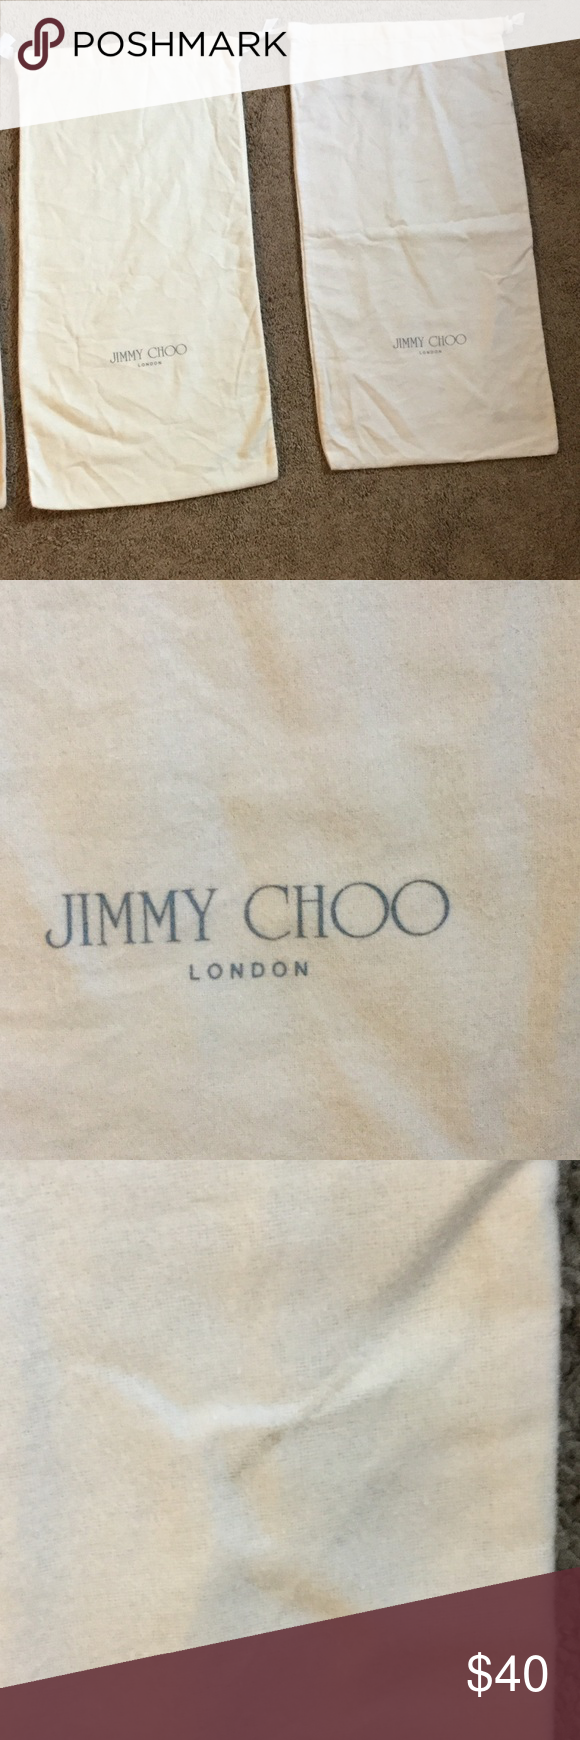 """Jimmy Choo Dust Cover for Boots Jimmy Choo Dust Cover for Boots, 25"""" by 12.75"""", has some dark marks, see pictures 2,3,4, & 5, priced accordingly Jimmy Choo Bags"""